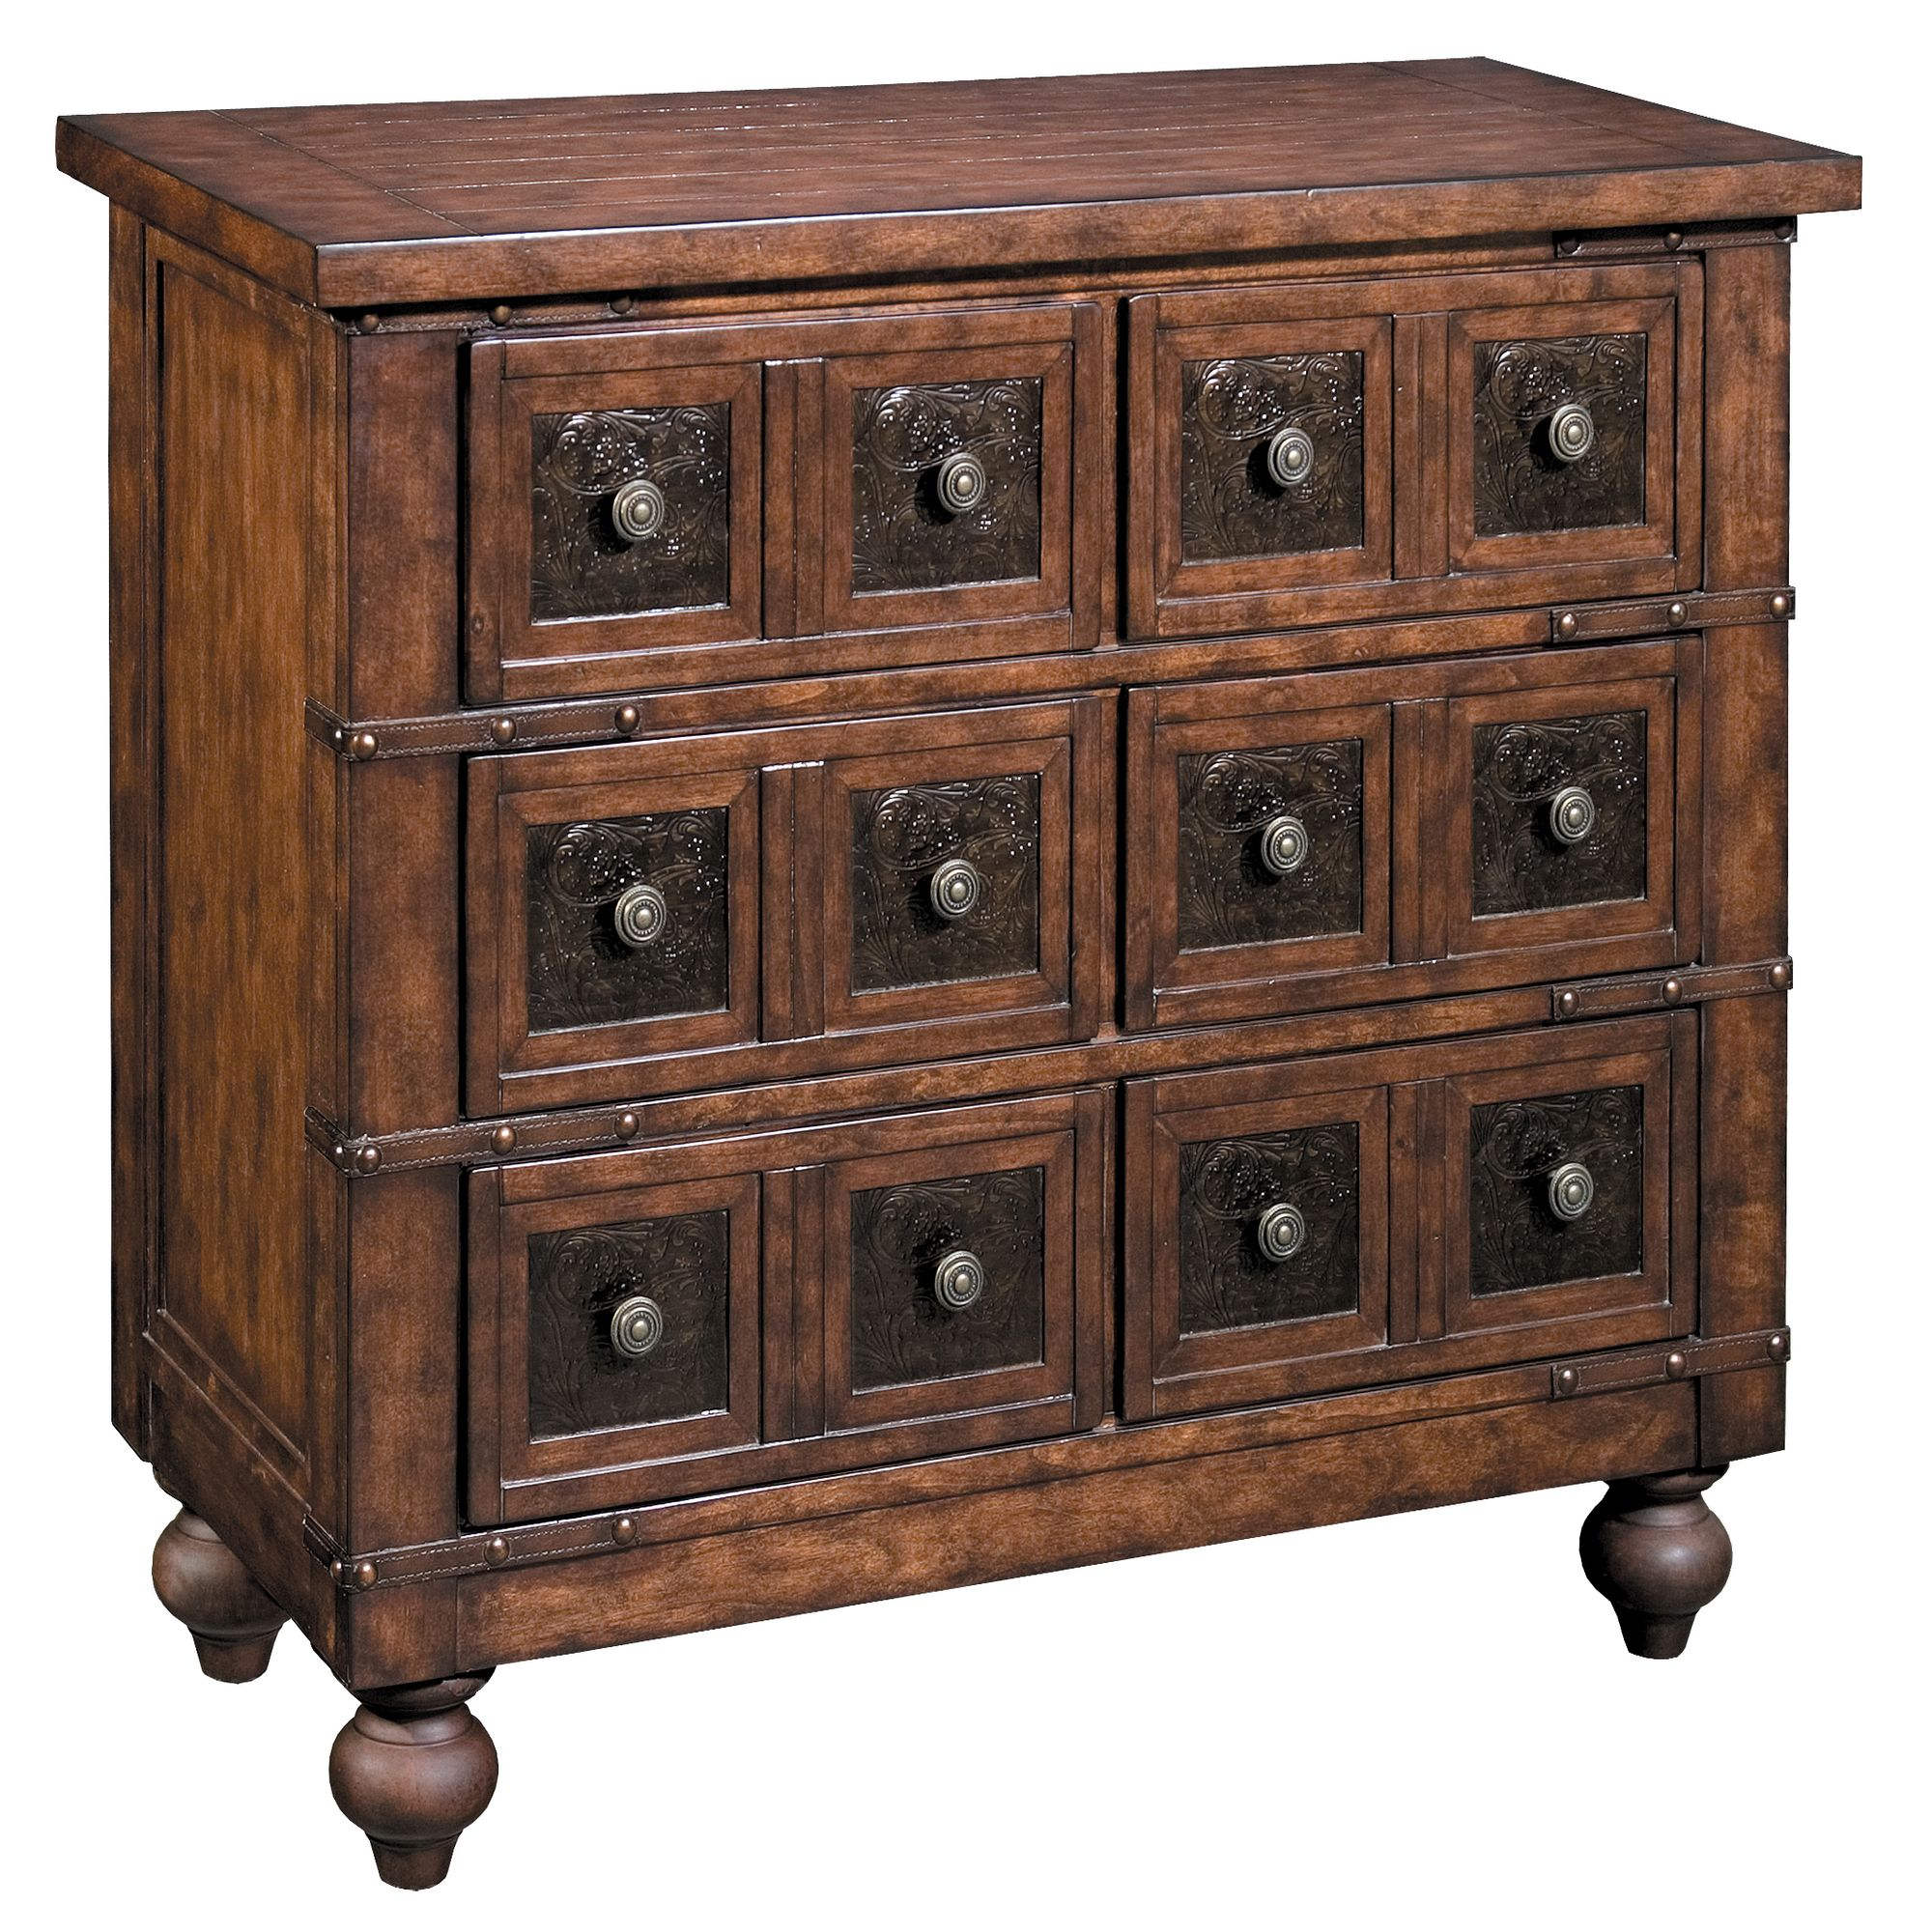 Gorgeous Apothecary Chest   Made From Solid Wood, Leather Strapping, Iron  Inlay On Each Drawer Front, Nailhead Accents And Classic Bun Feet.